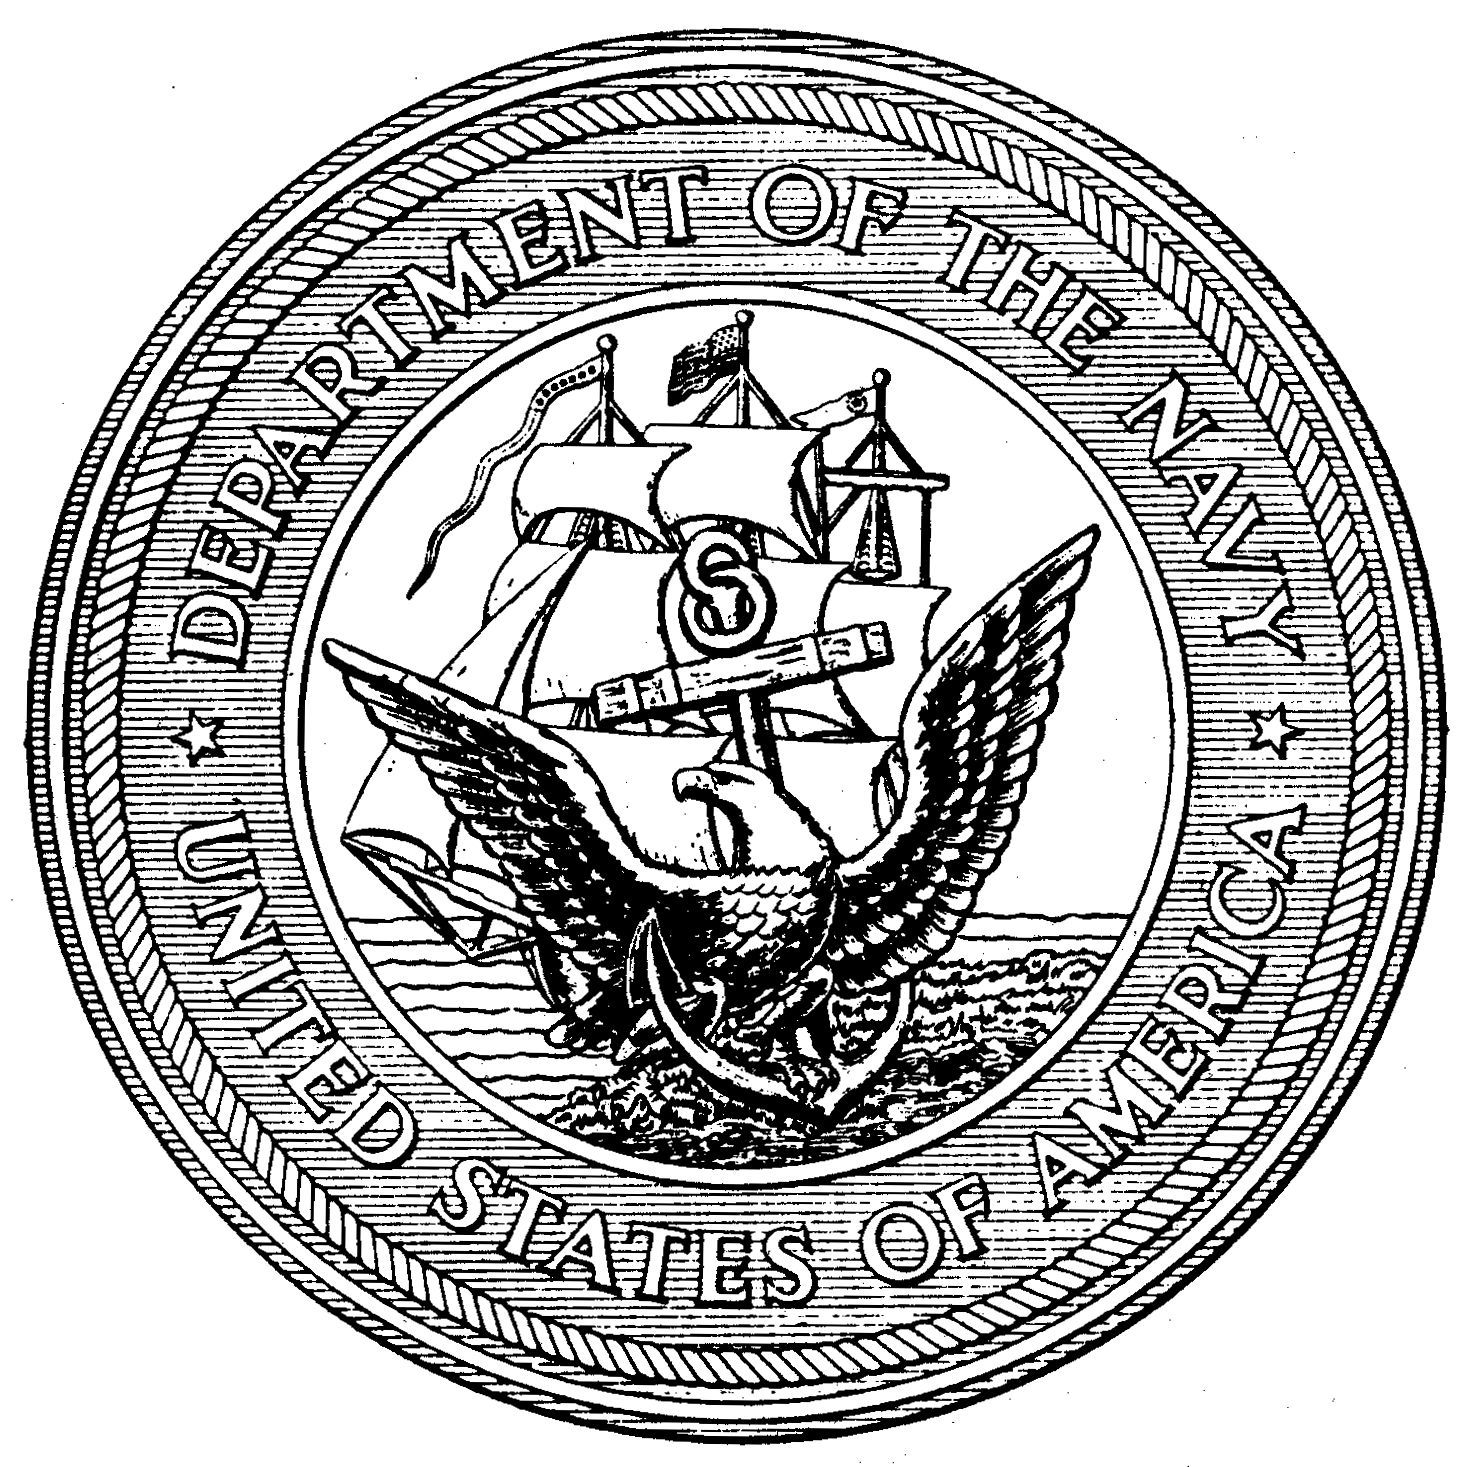 United states navy symbol coloring pages military life united states navy symbol coloring pages biocorpaavc